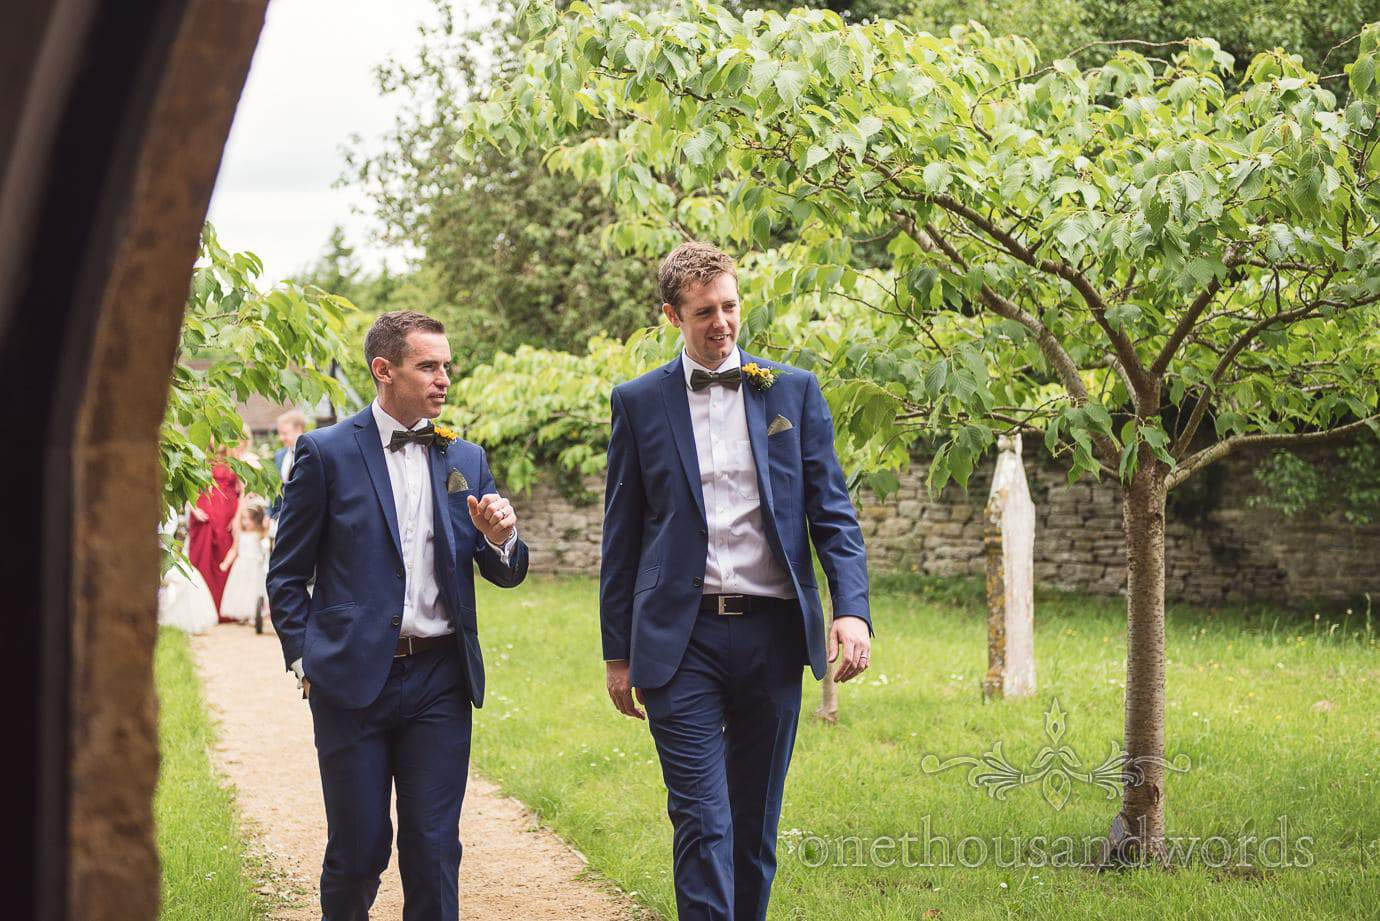 Grooms men in blue suits and bow ties walk to countryside church wedding ceremony